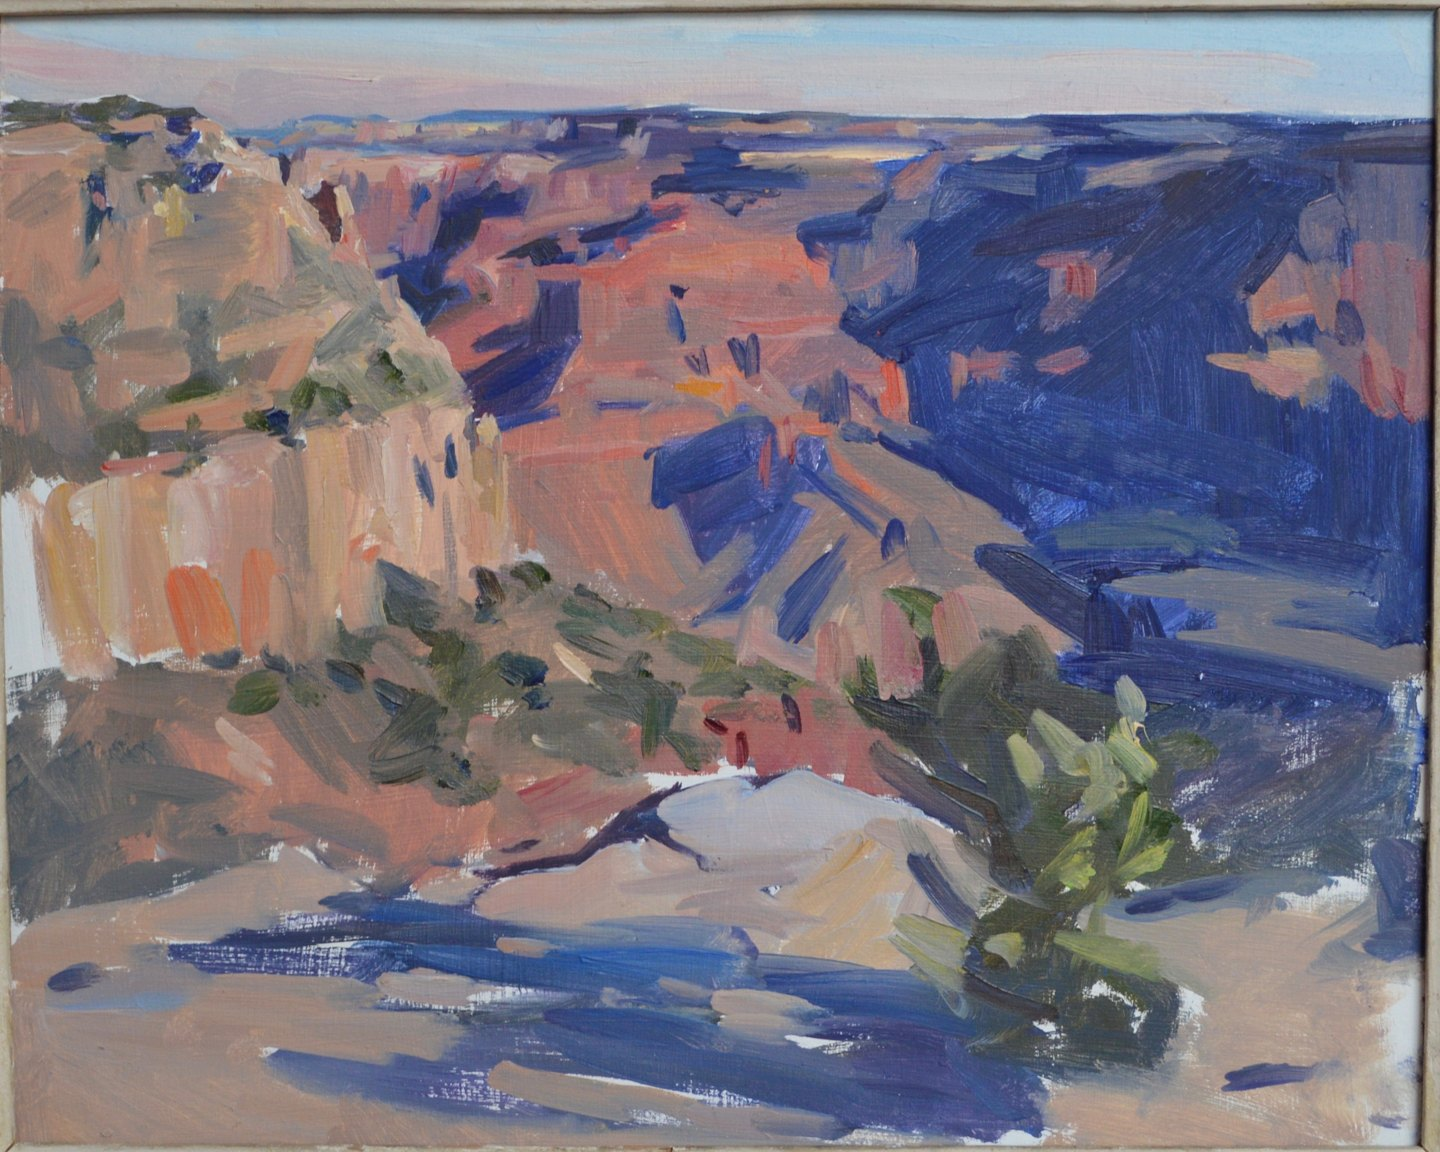 Canyon sketch